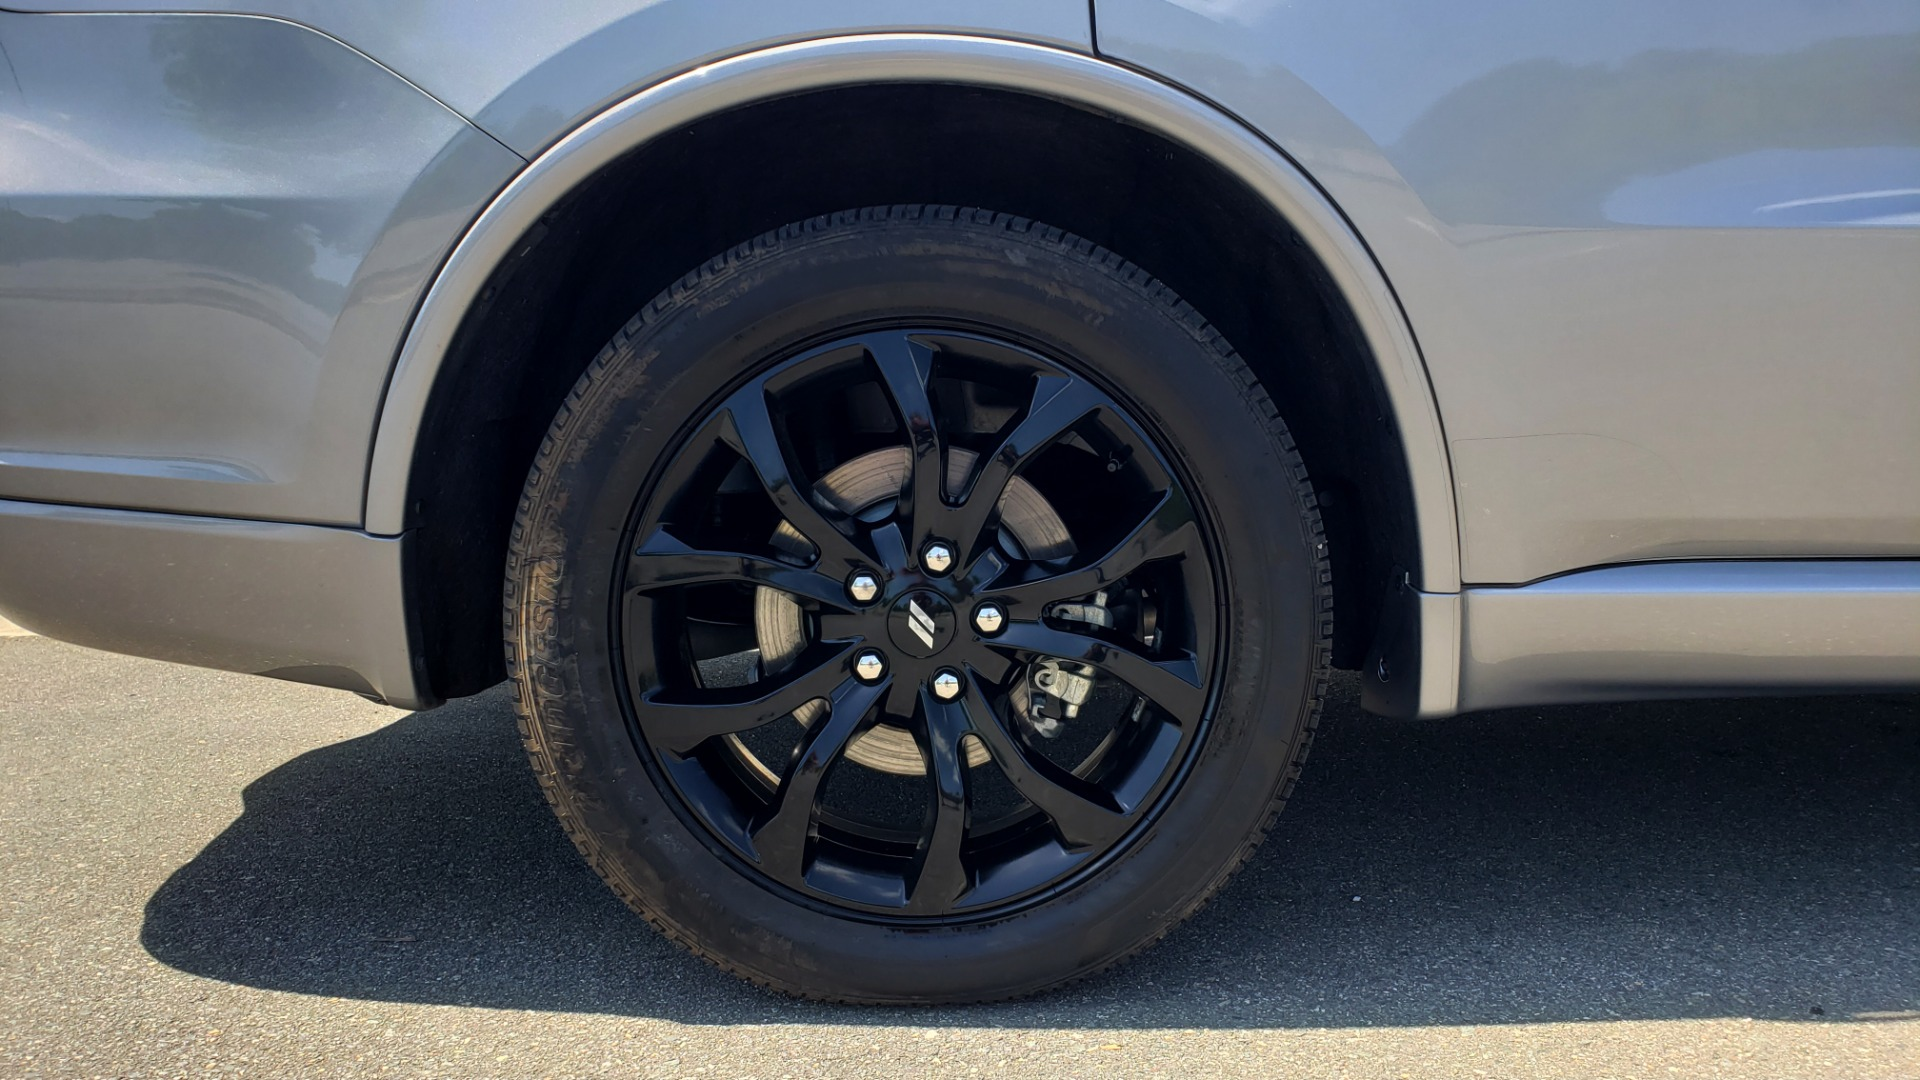 Used 2019 Dodge DURANGO R/T BLACKTOP AWD / TECH / ADAPT CRUS / TOW GROUP / SUNROOF / REARVIEW for sale Sold at Formula Imports in Charlotte NC 28227 92